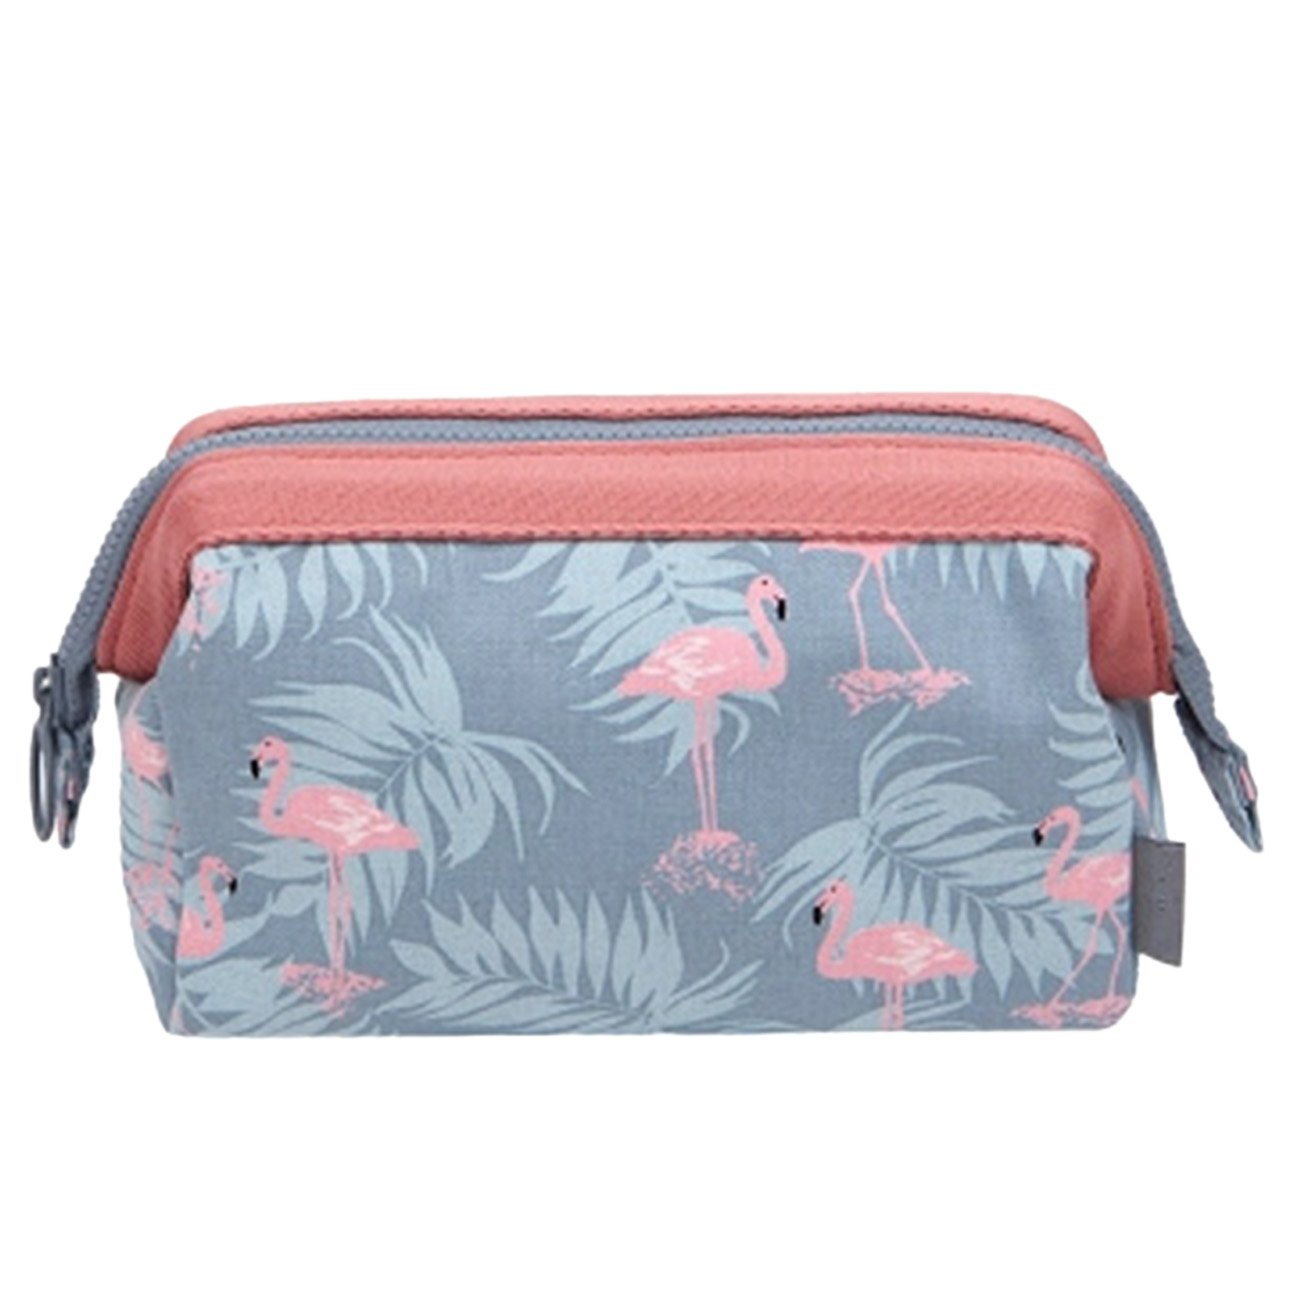 THEE Women Travel Toiletry Bag Cosmetic Makeup Pouch Waterproof